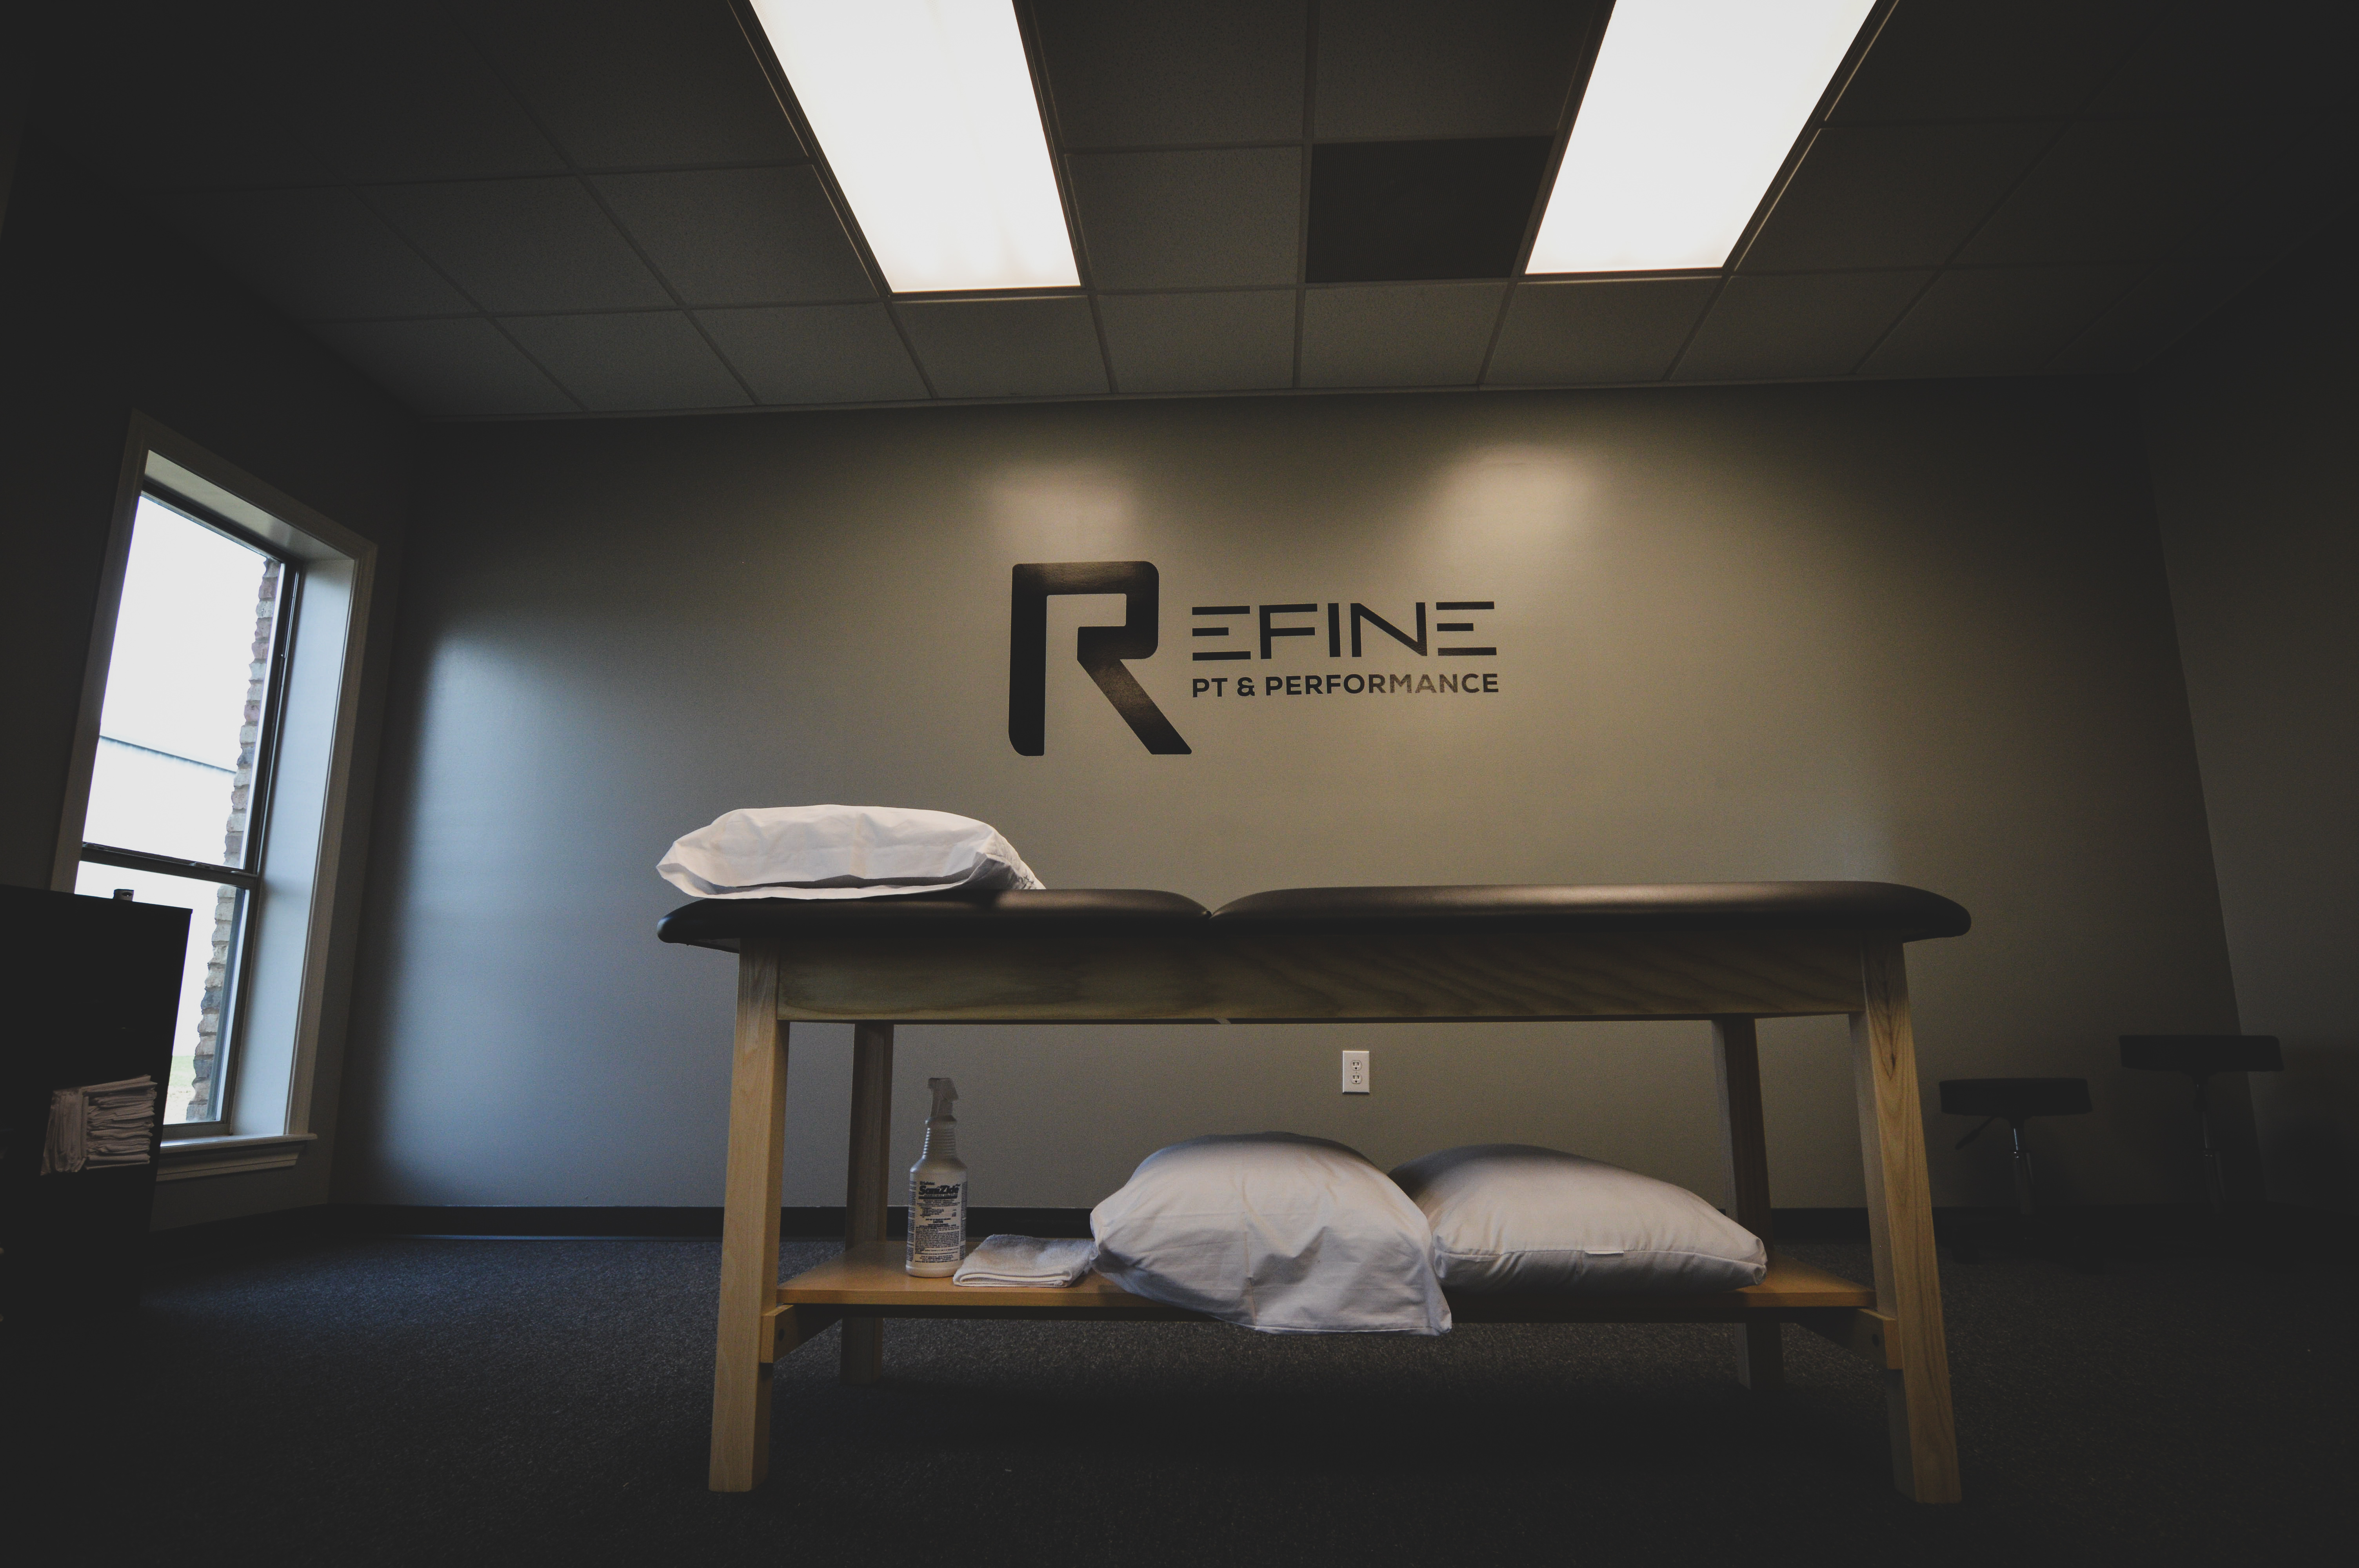 Physical Therapy Room - Refine PT & Performance